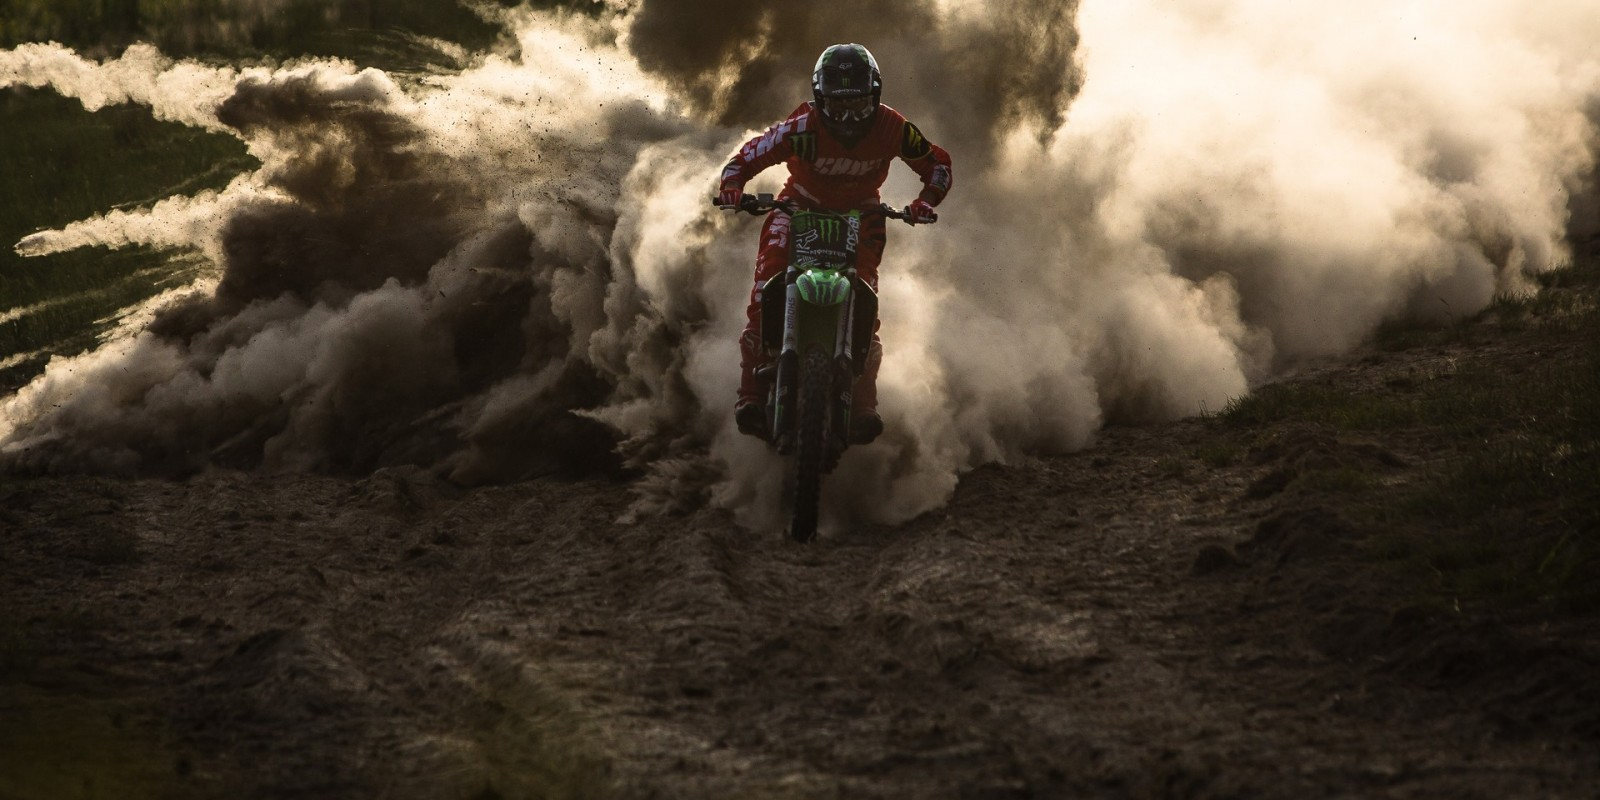 photos from the making of XGames RealMoto, Kris Foster in Kamloops, BC